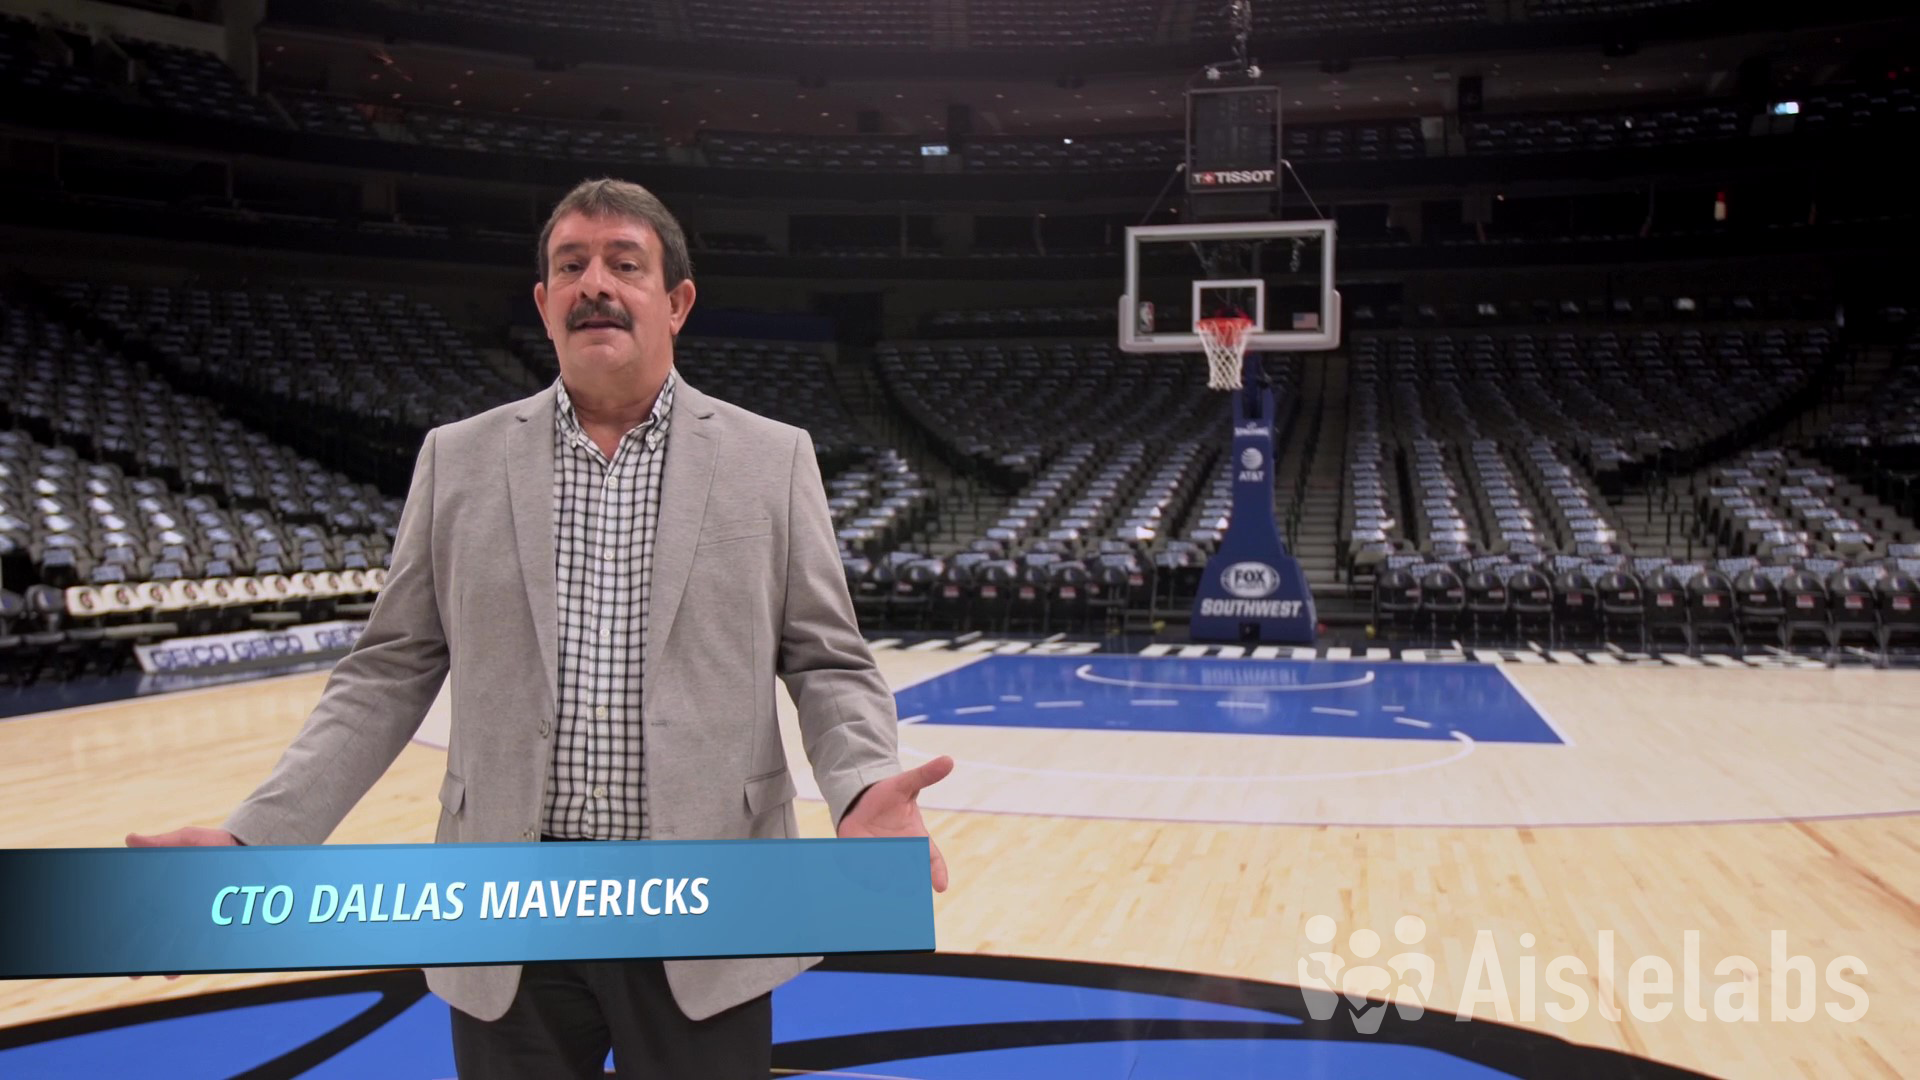 David Herr - Dallas Mavericks CTO